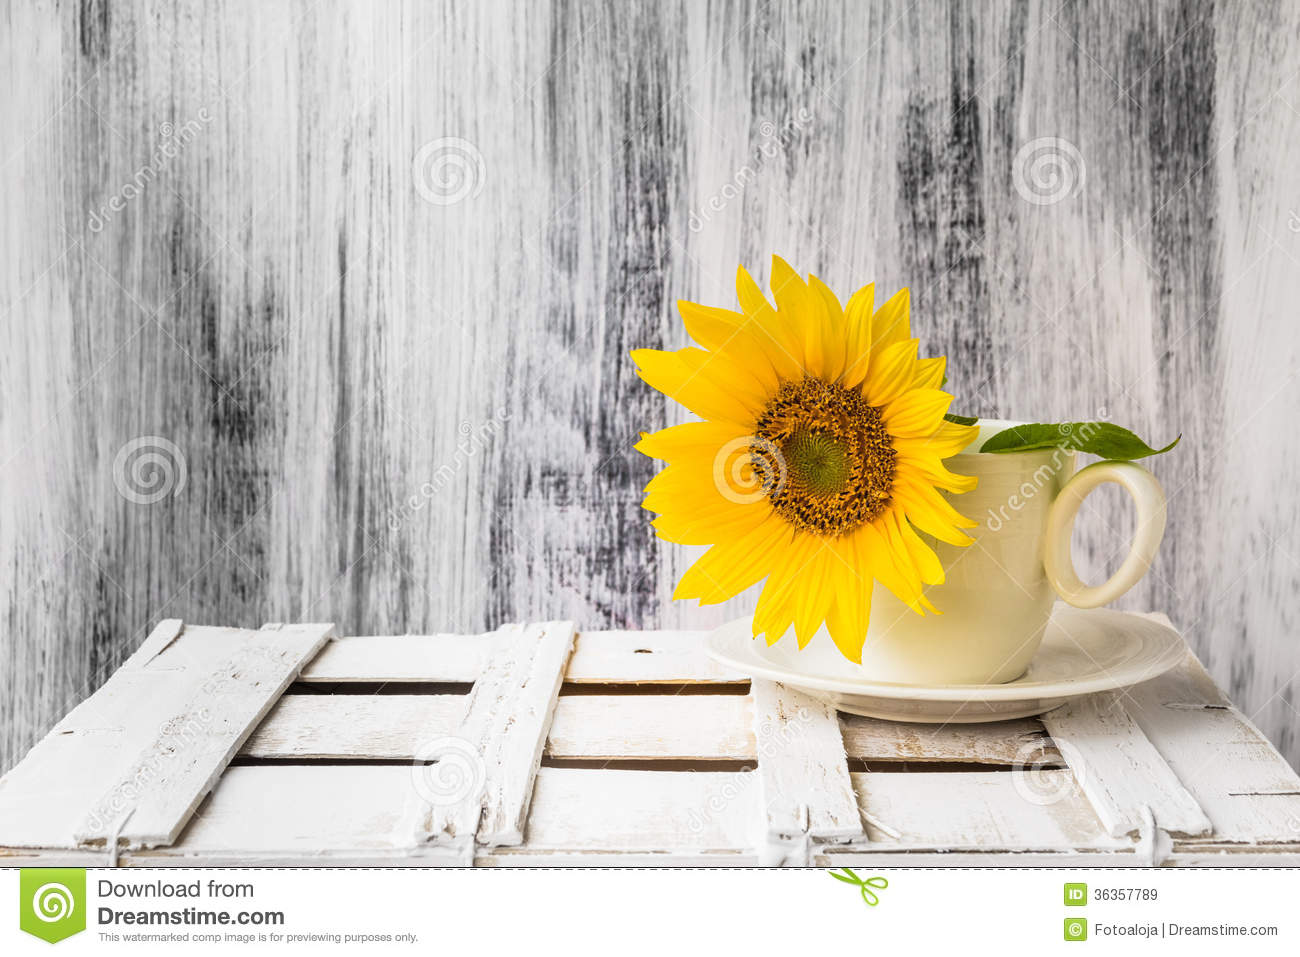 Background Still Life Flower Sunflower Wooden White Vintage Cup